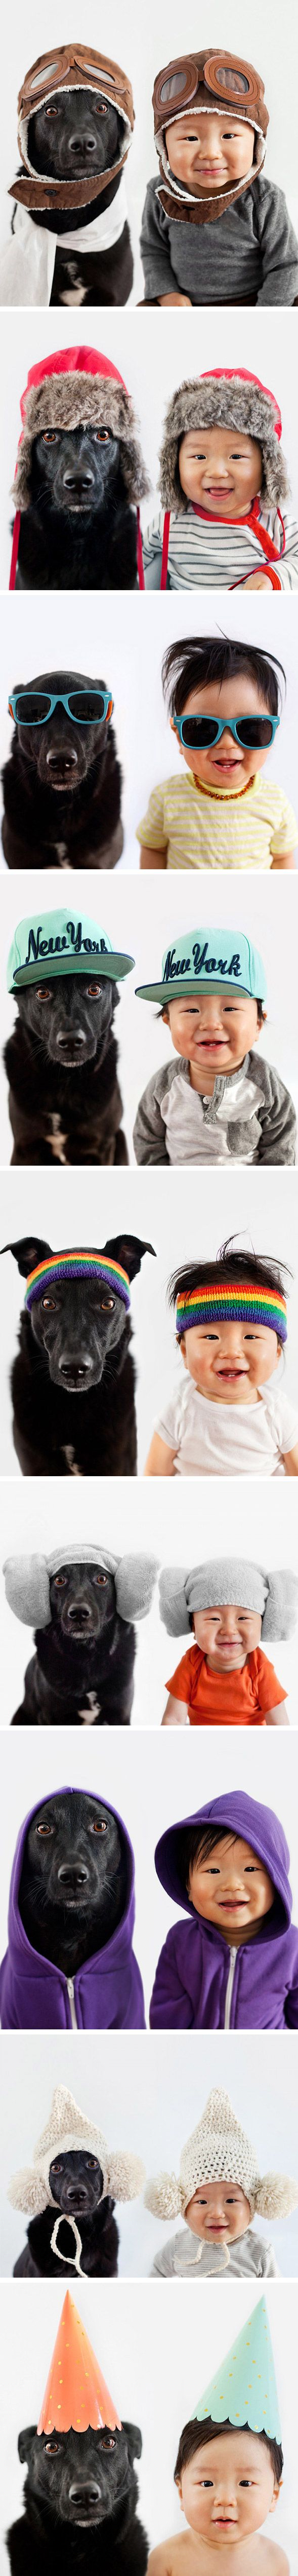 Planning to do this photoshoot with my babies and dogs someday